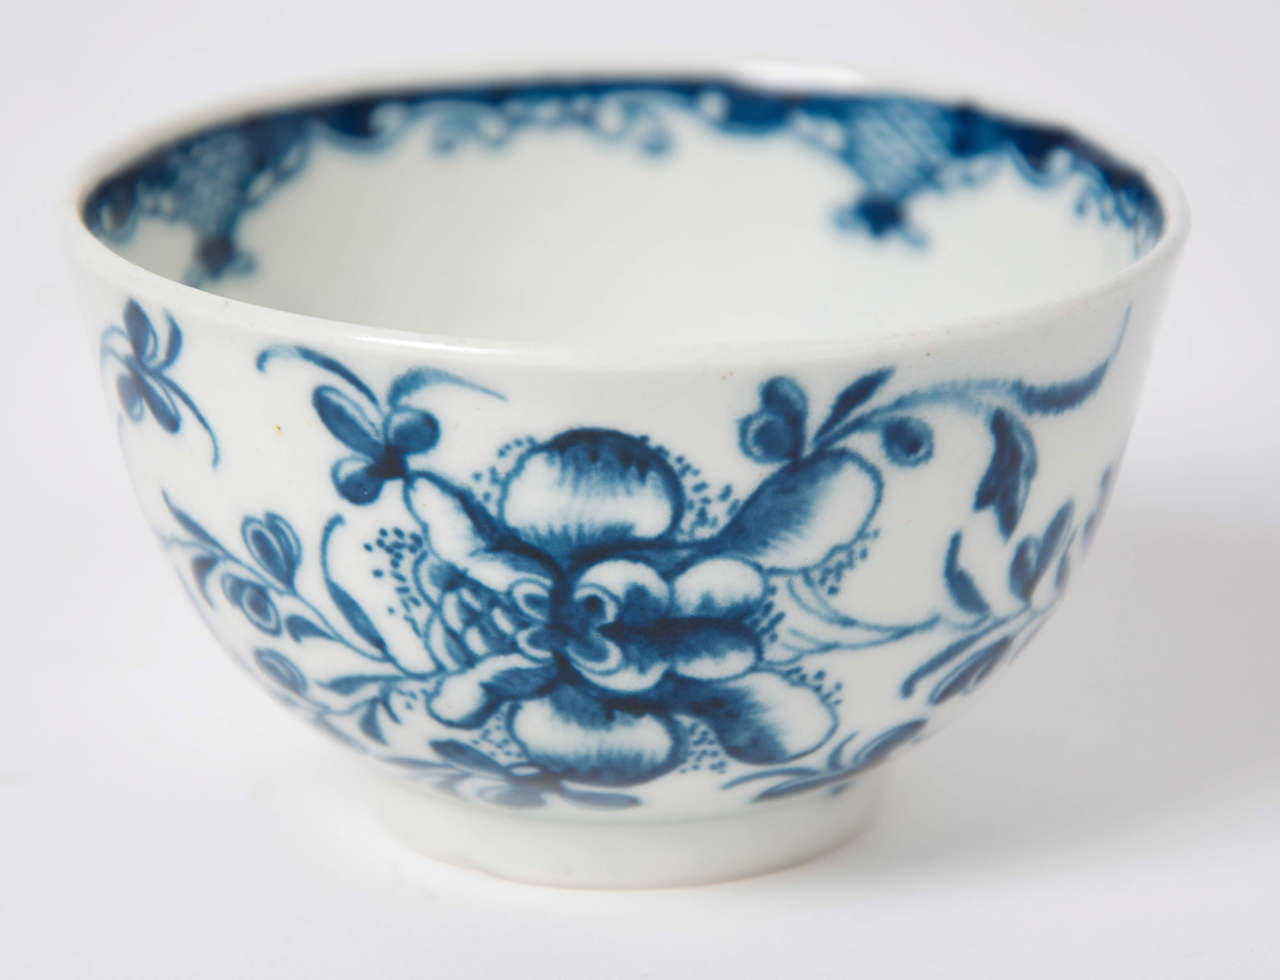 First Period Worcester Porcelain Tea Bowl and Saucer Mansfield Pattern, Ca 1765 For Sale 2